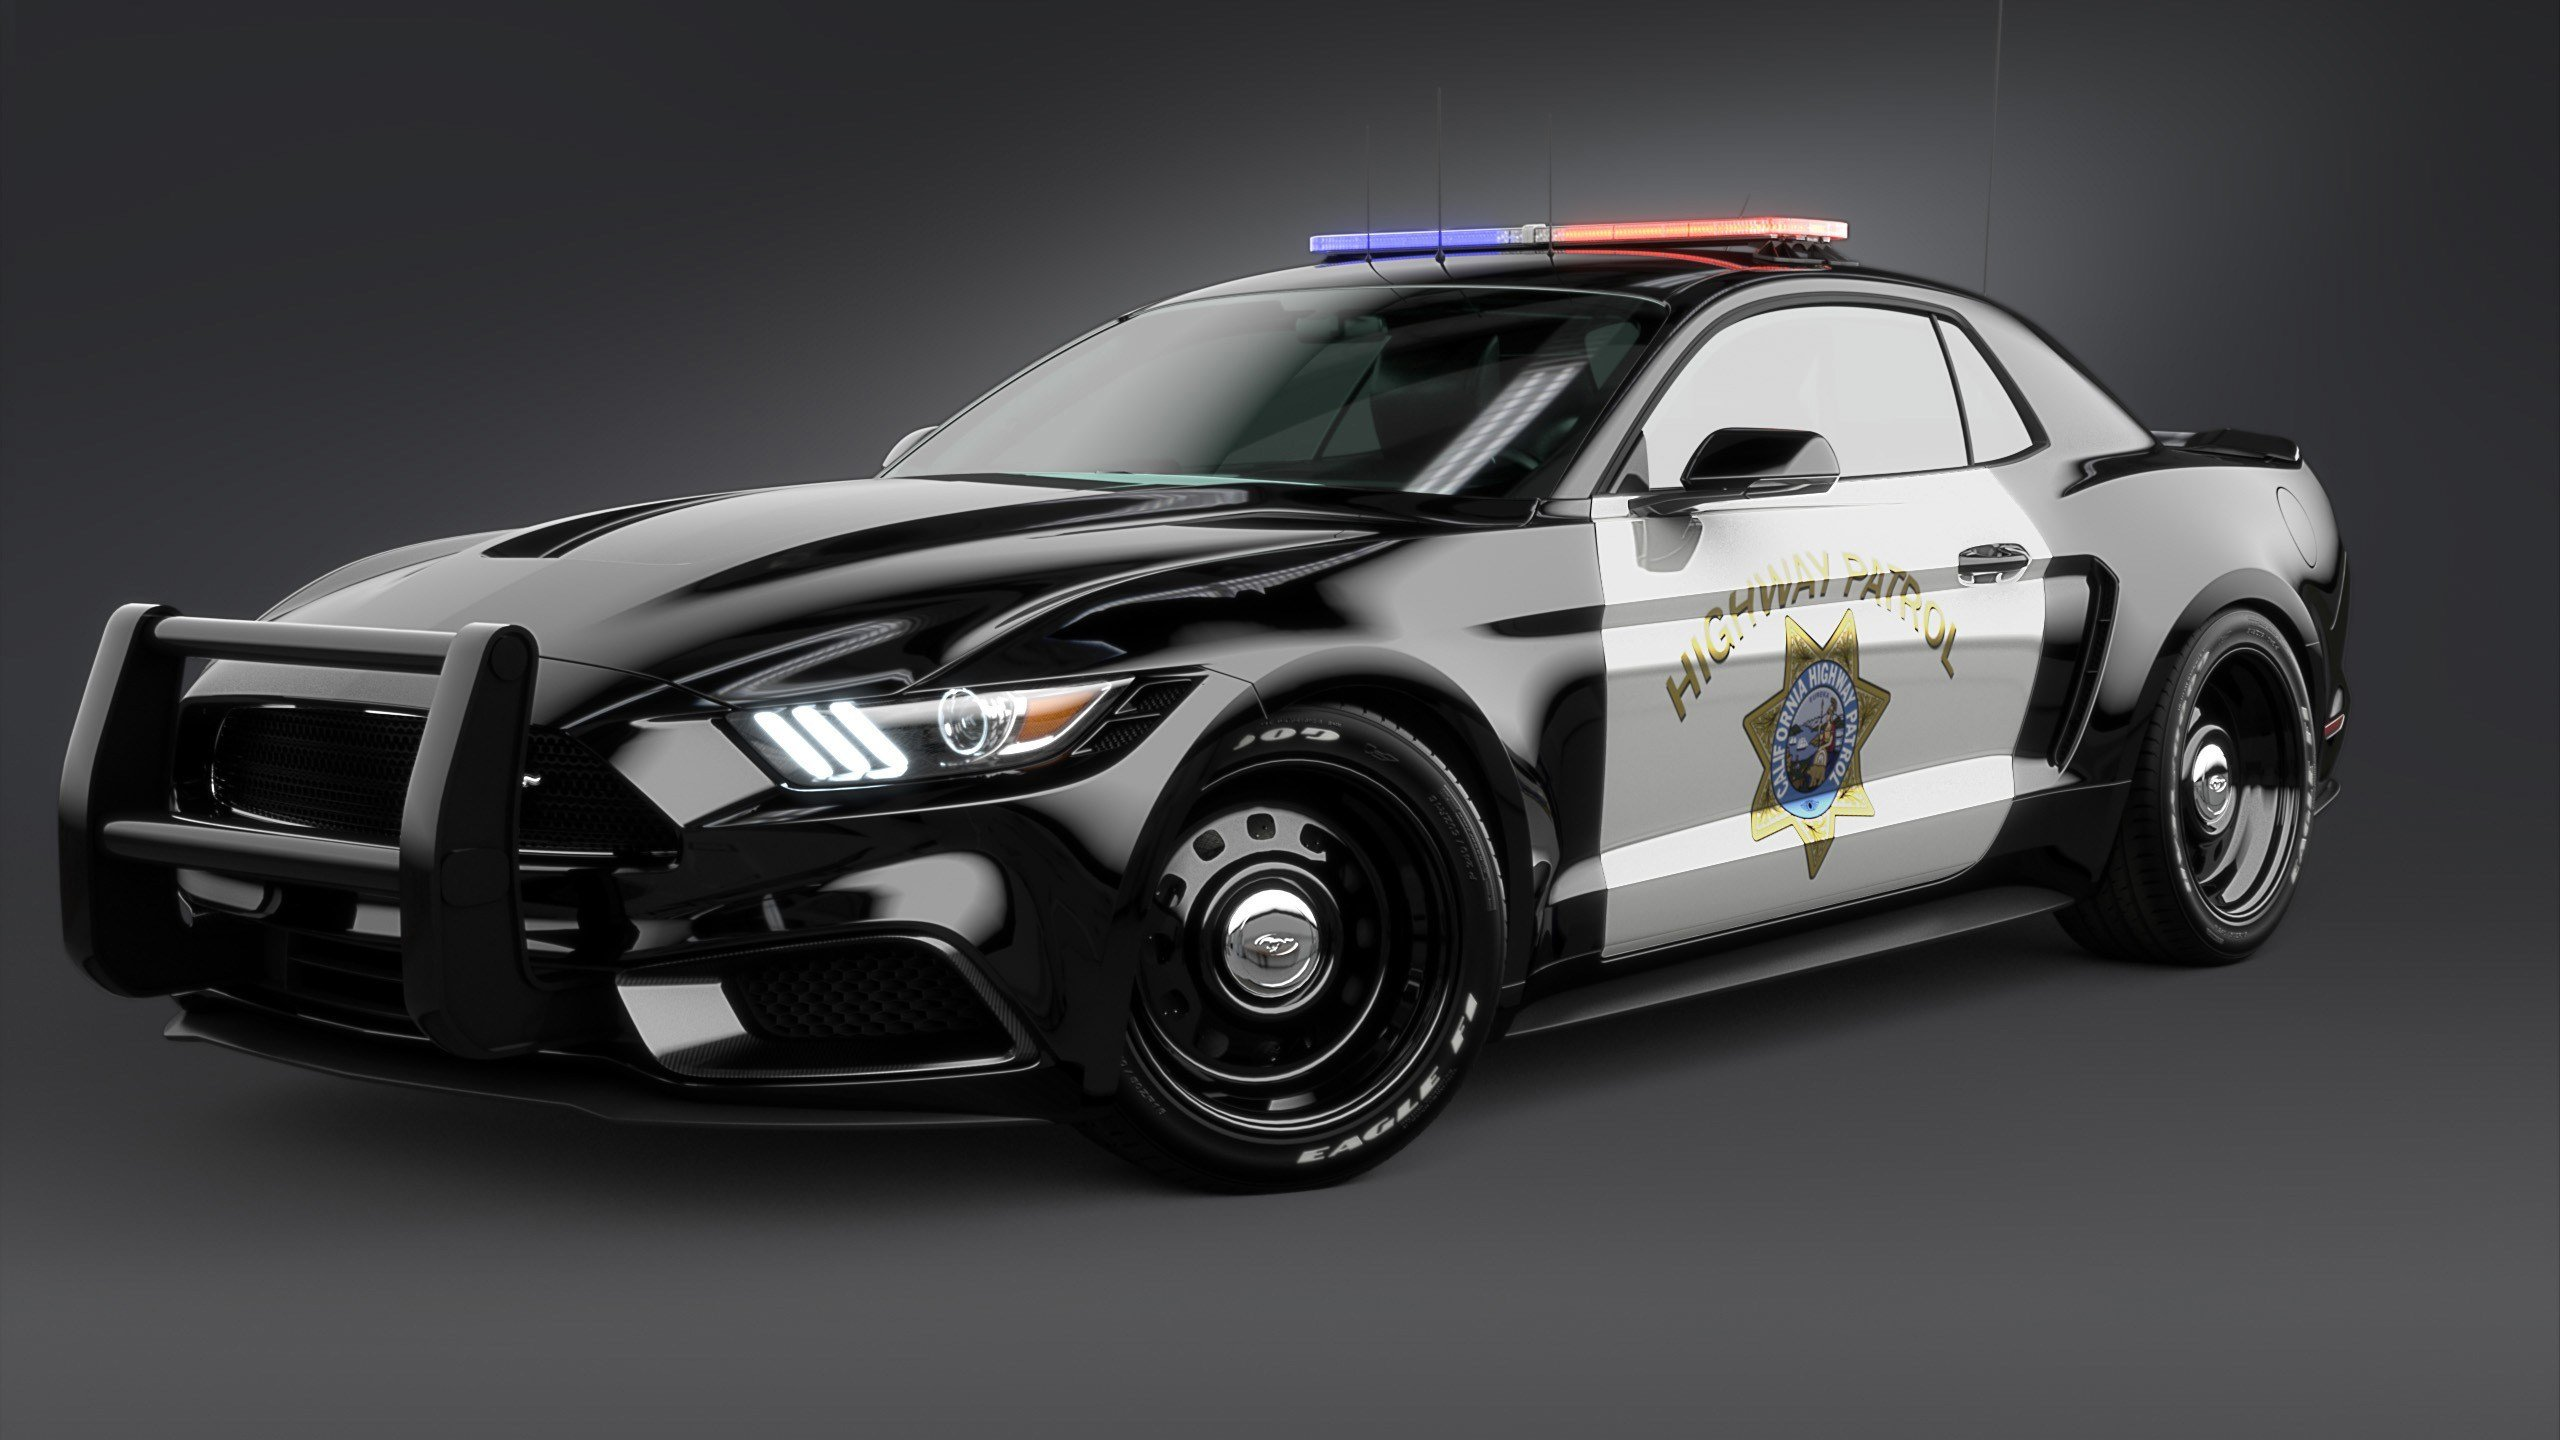 New 2017 Ford Mustang Notchback Design Police 2 Wallpaper Hd On This Month